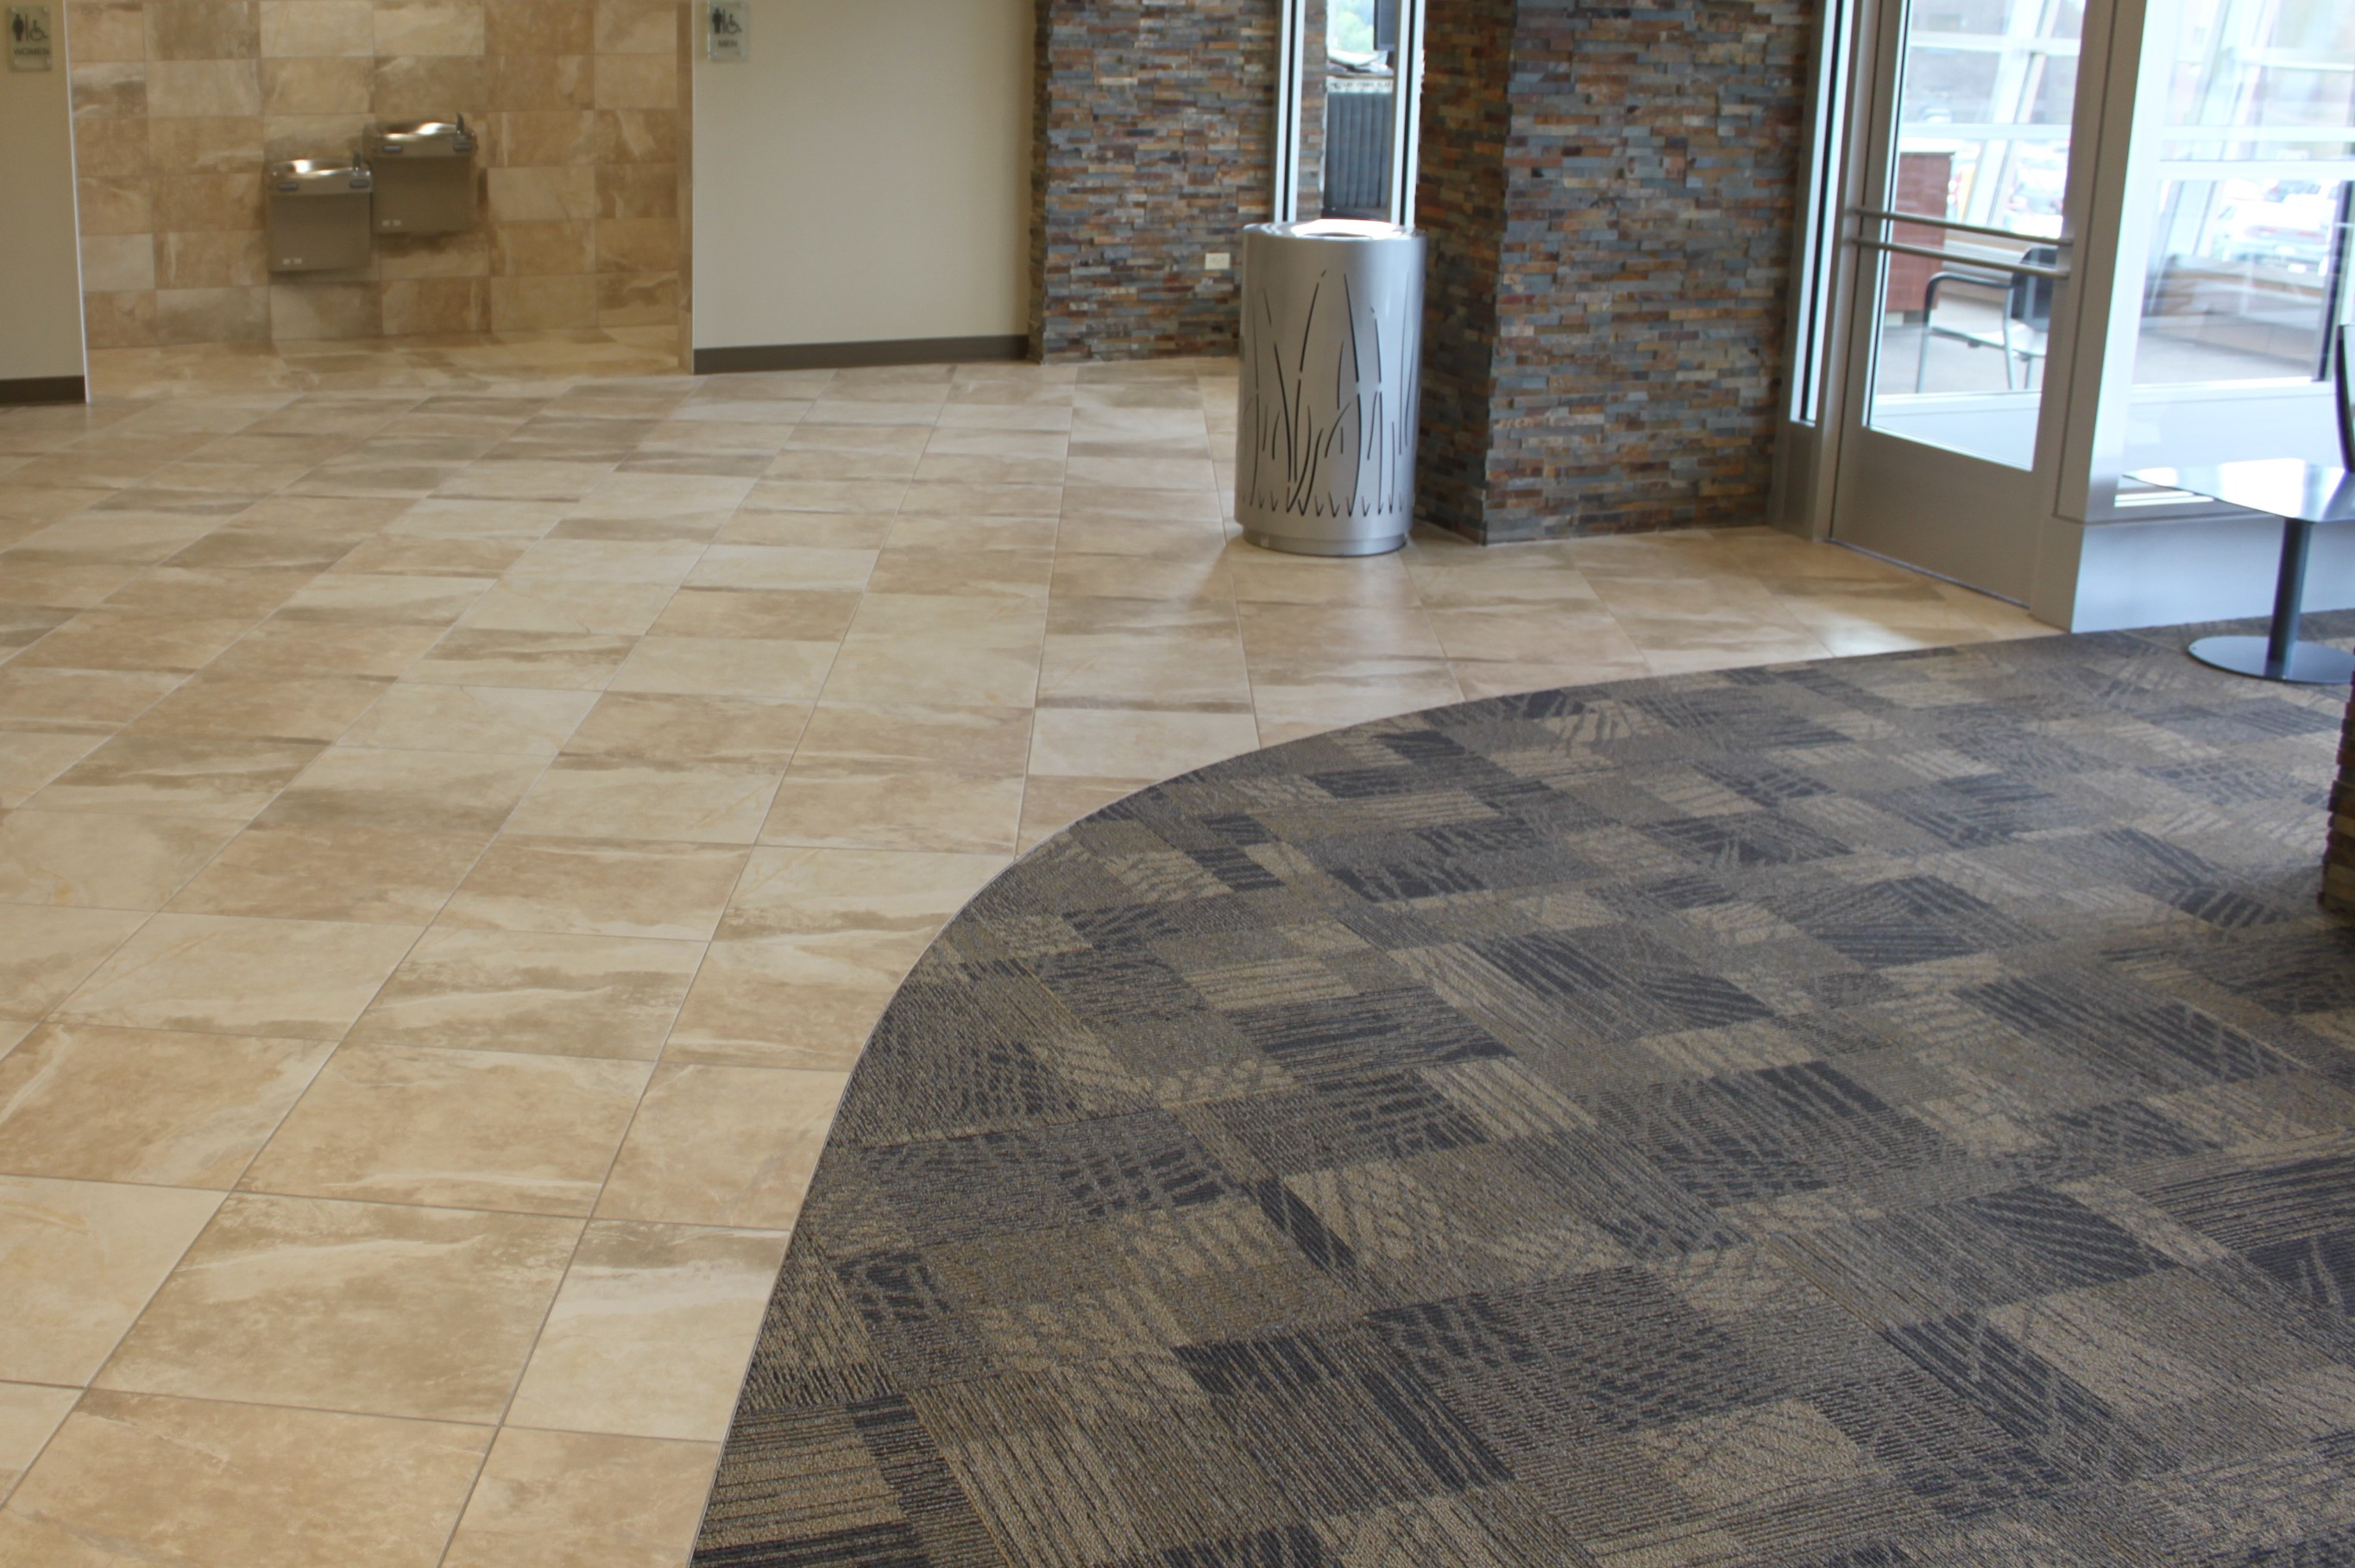 Western maryland juvenile detention center penn installations scope of work carpet and ceramic tile dailygadgetfo Gallery